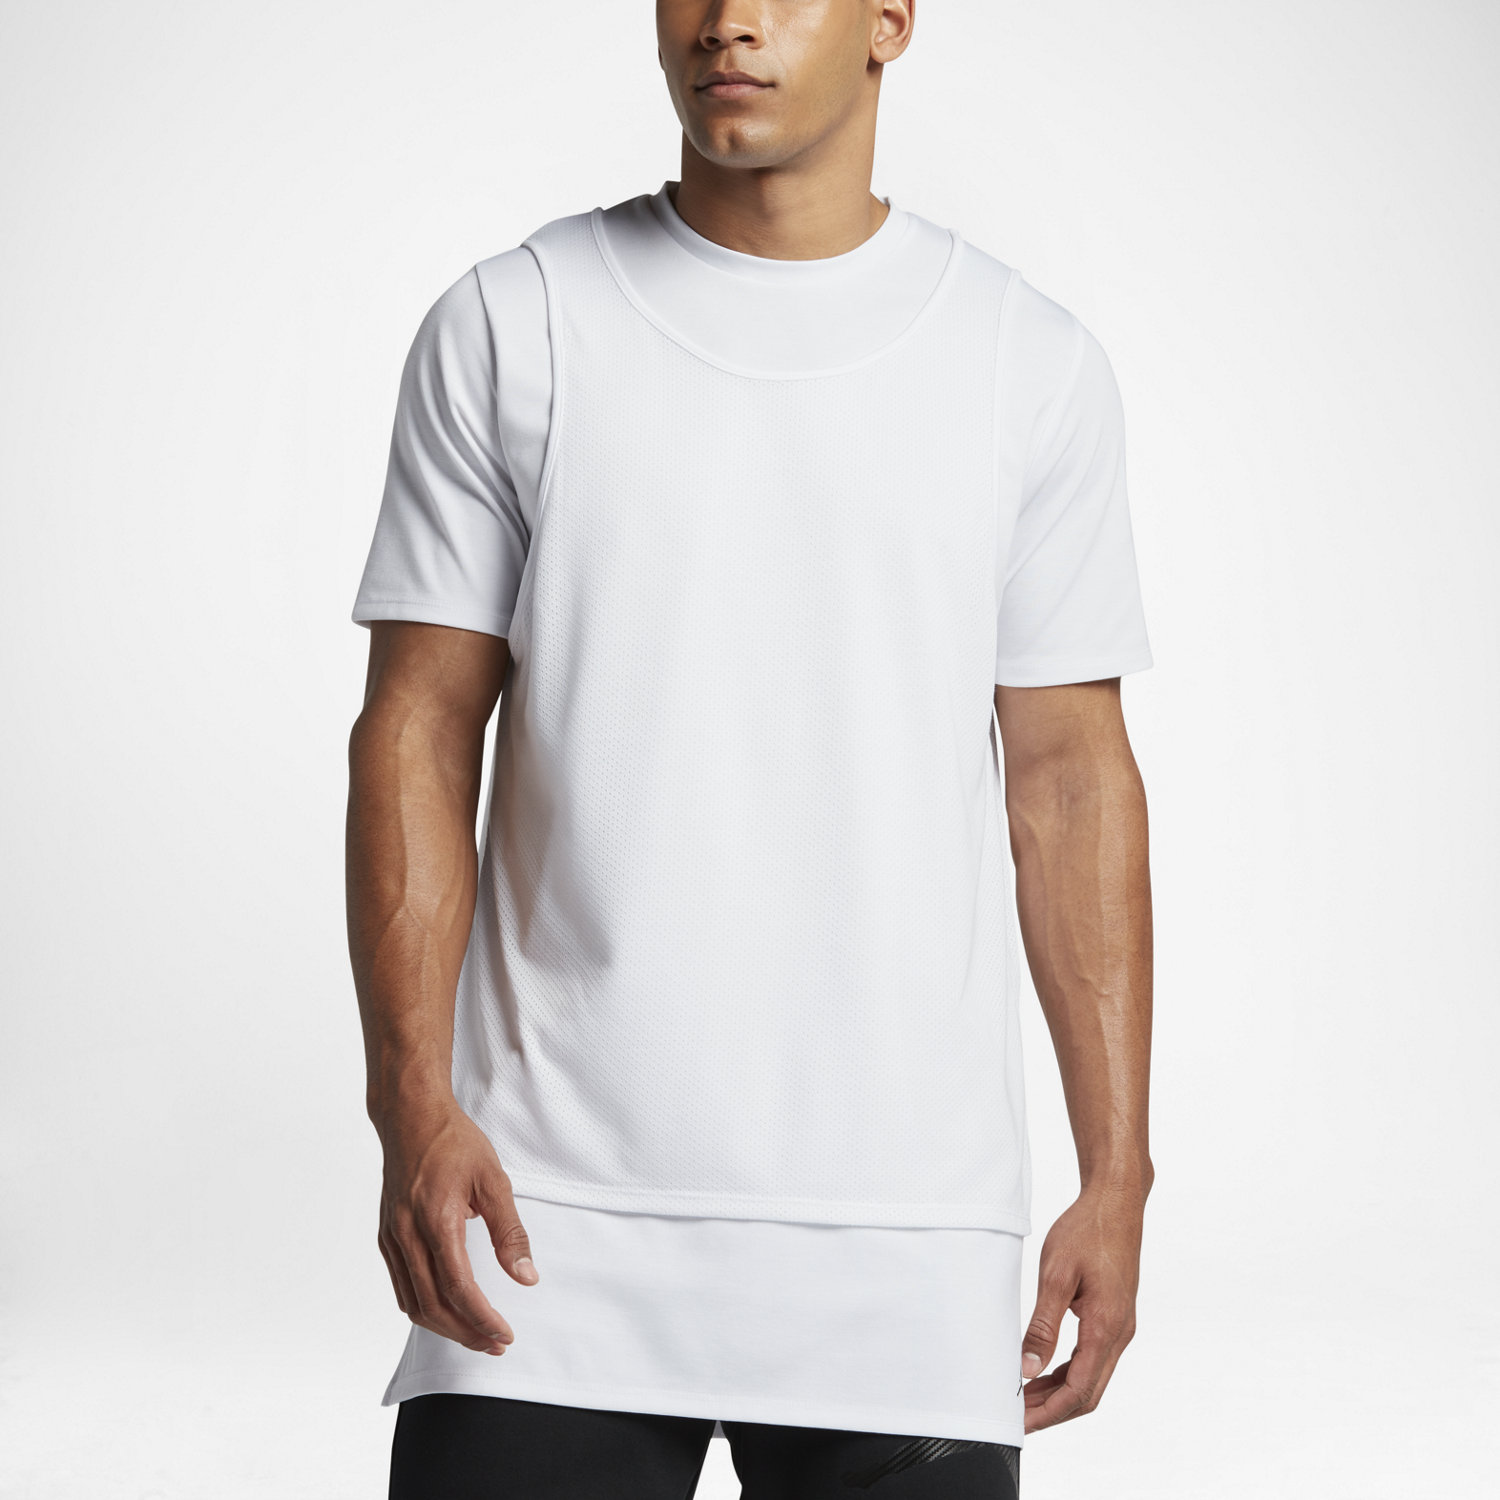 Men's Jordan Short-sleeve Shirts. Nike.com